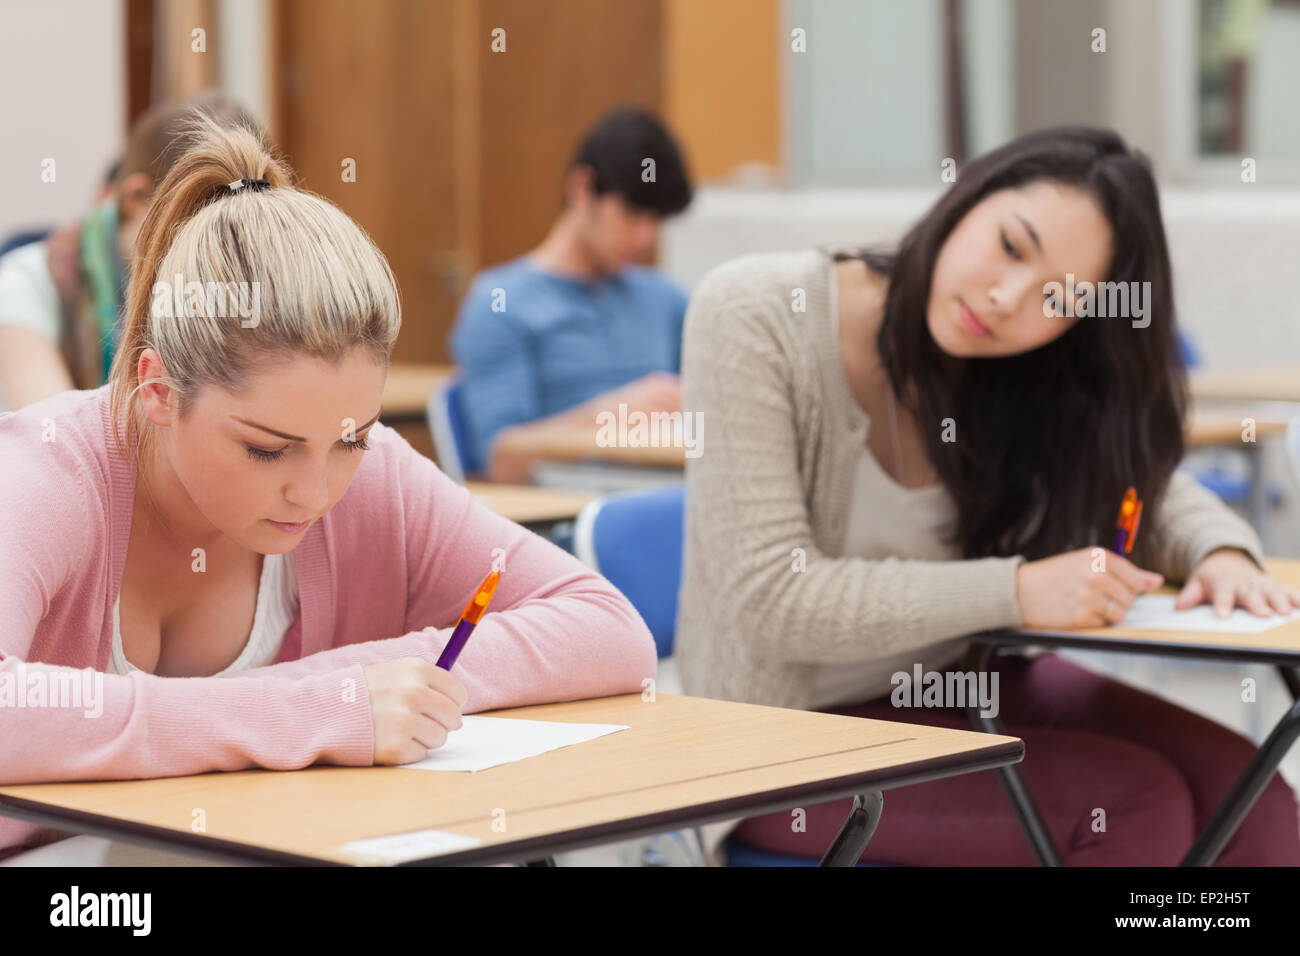 Brunette is trying to copy blonde student in exam - Stock Image